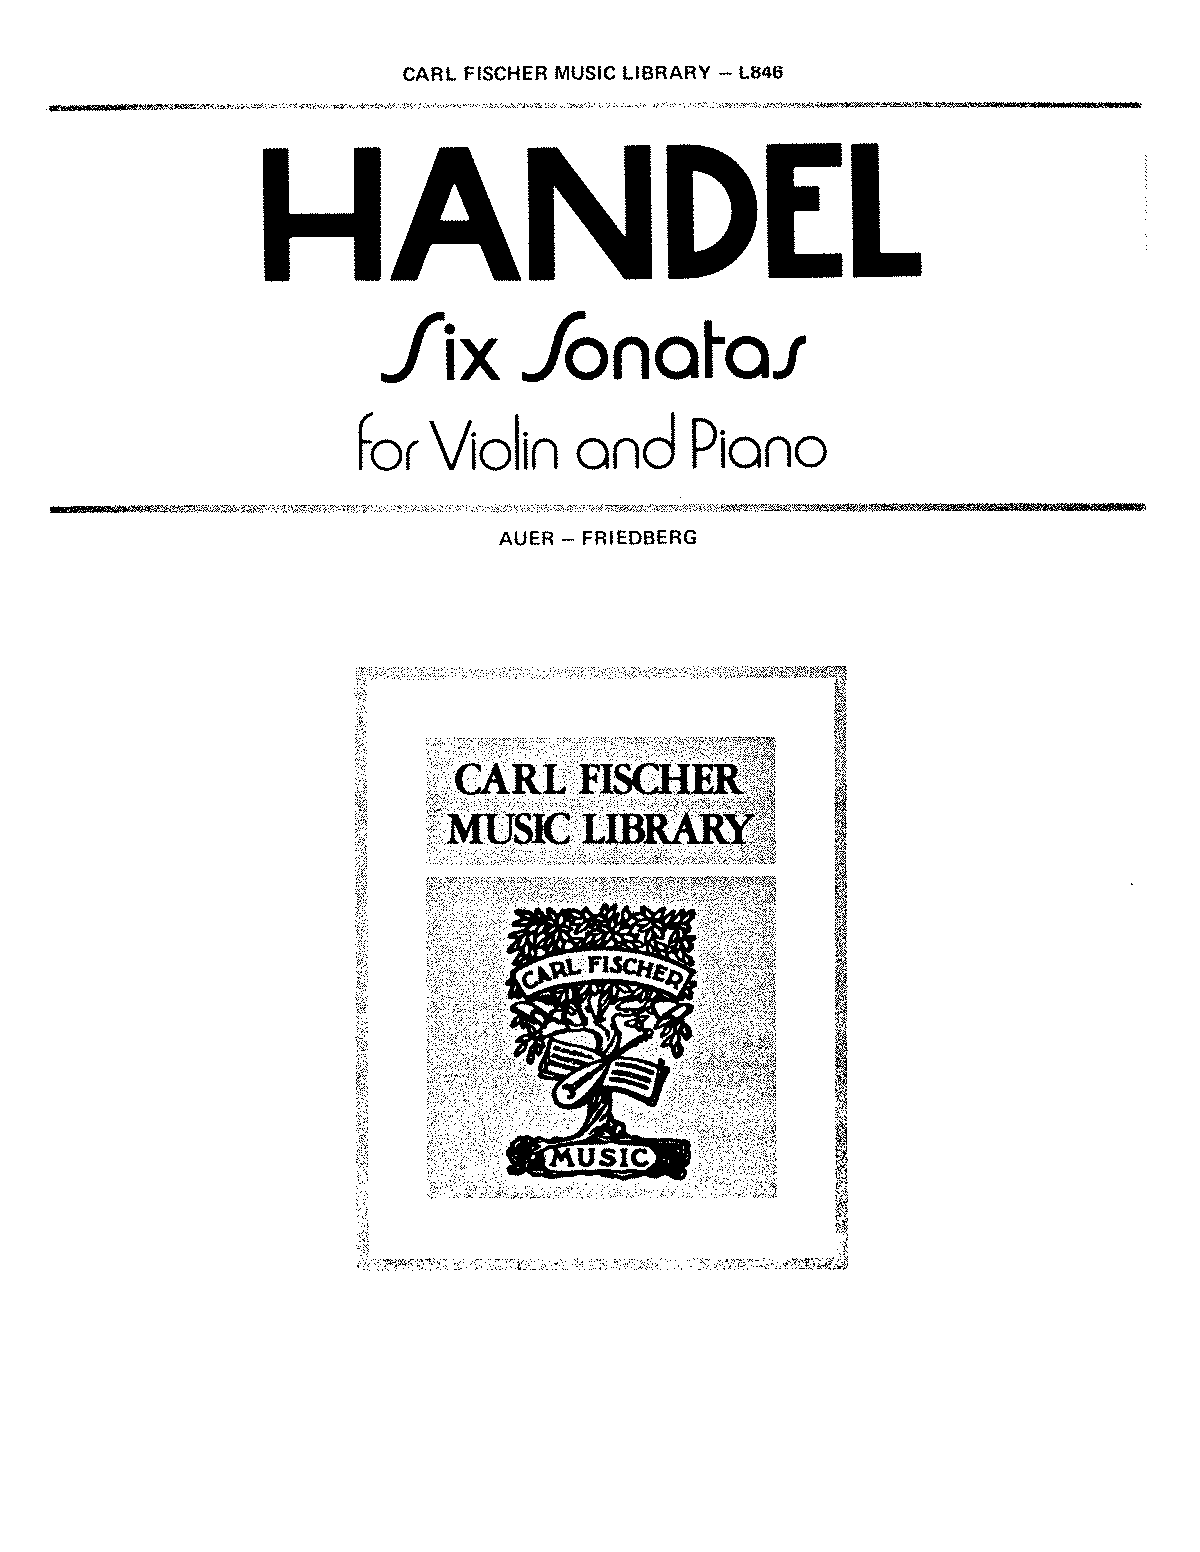 PMLP13605-Handel - Sonata No1 in A Major (Auer-Friedberg) for Violin Piano 1pno.pdf